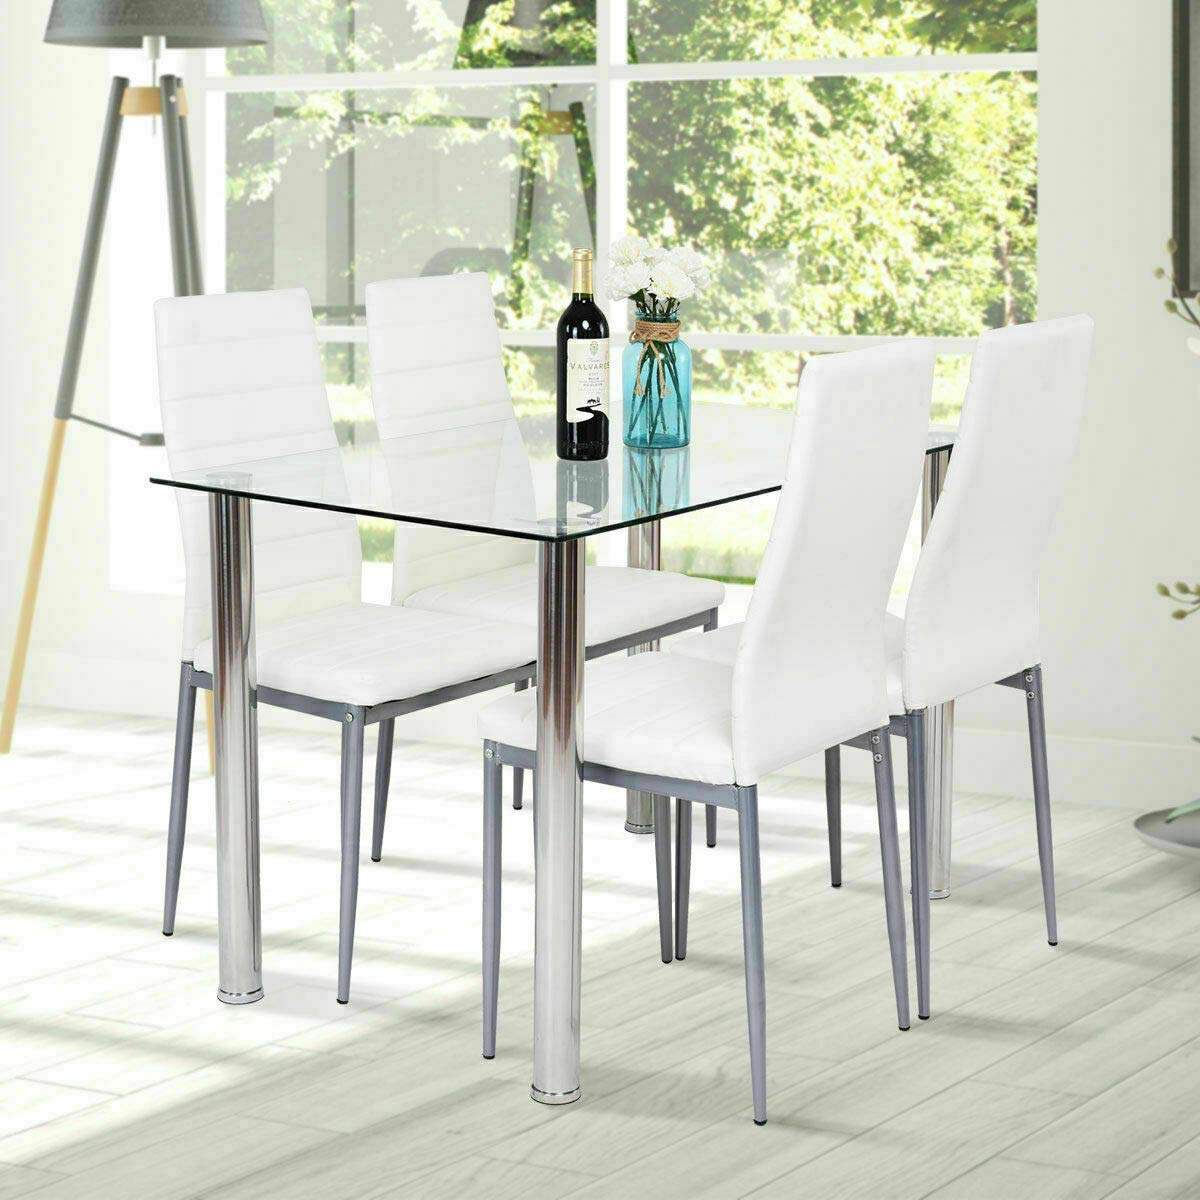 Dining Table With Chairs 4homart 5 Pcs Glass Dining Kitchen Table Set Modern Tempered Glass Top Table And Pu Leather Chairs With 4 Chairs Dining Room Furniture Black Table